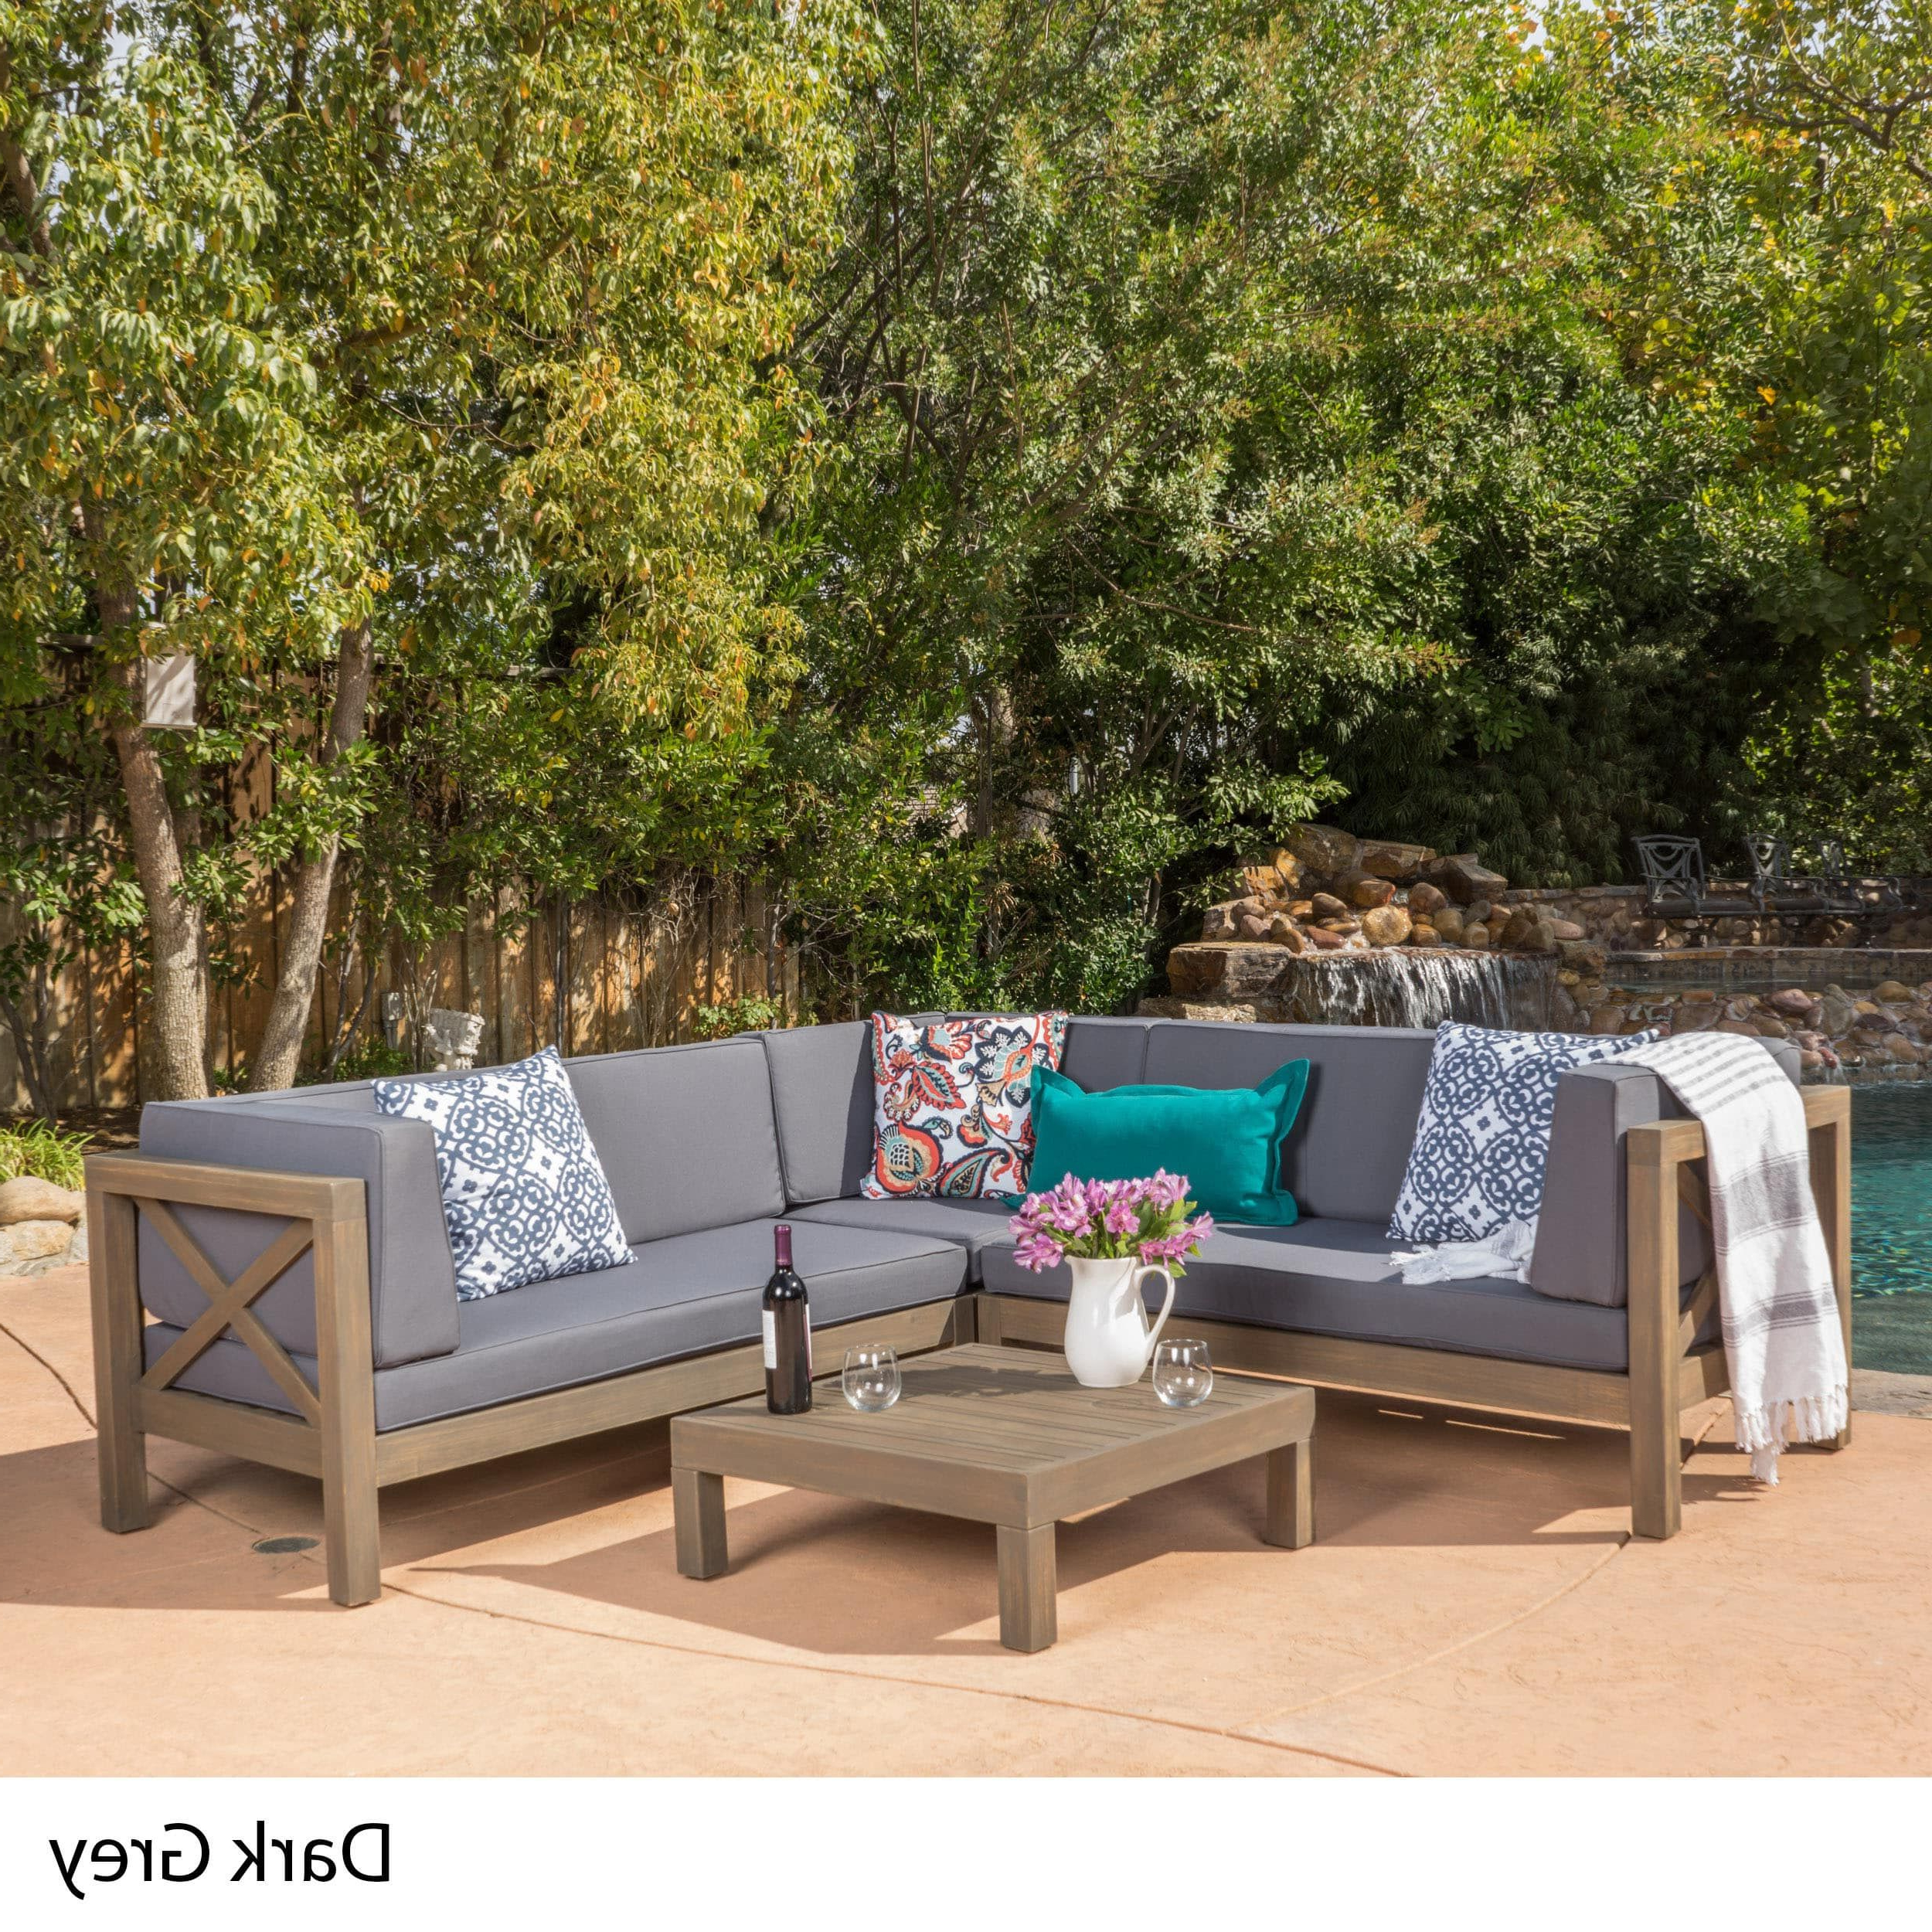 Trendy Brava Outdoor 4 Piece Wood Sectional Set W/ Cushions In Carina 4 Piece Sectionals Seating Group With Cushions (View 22 of 25)